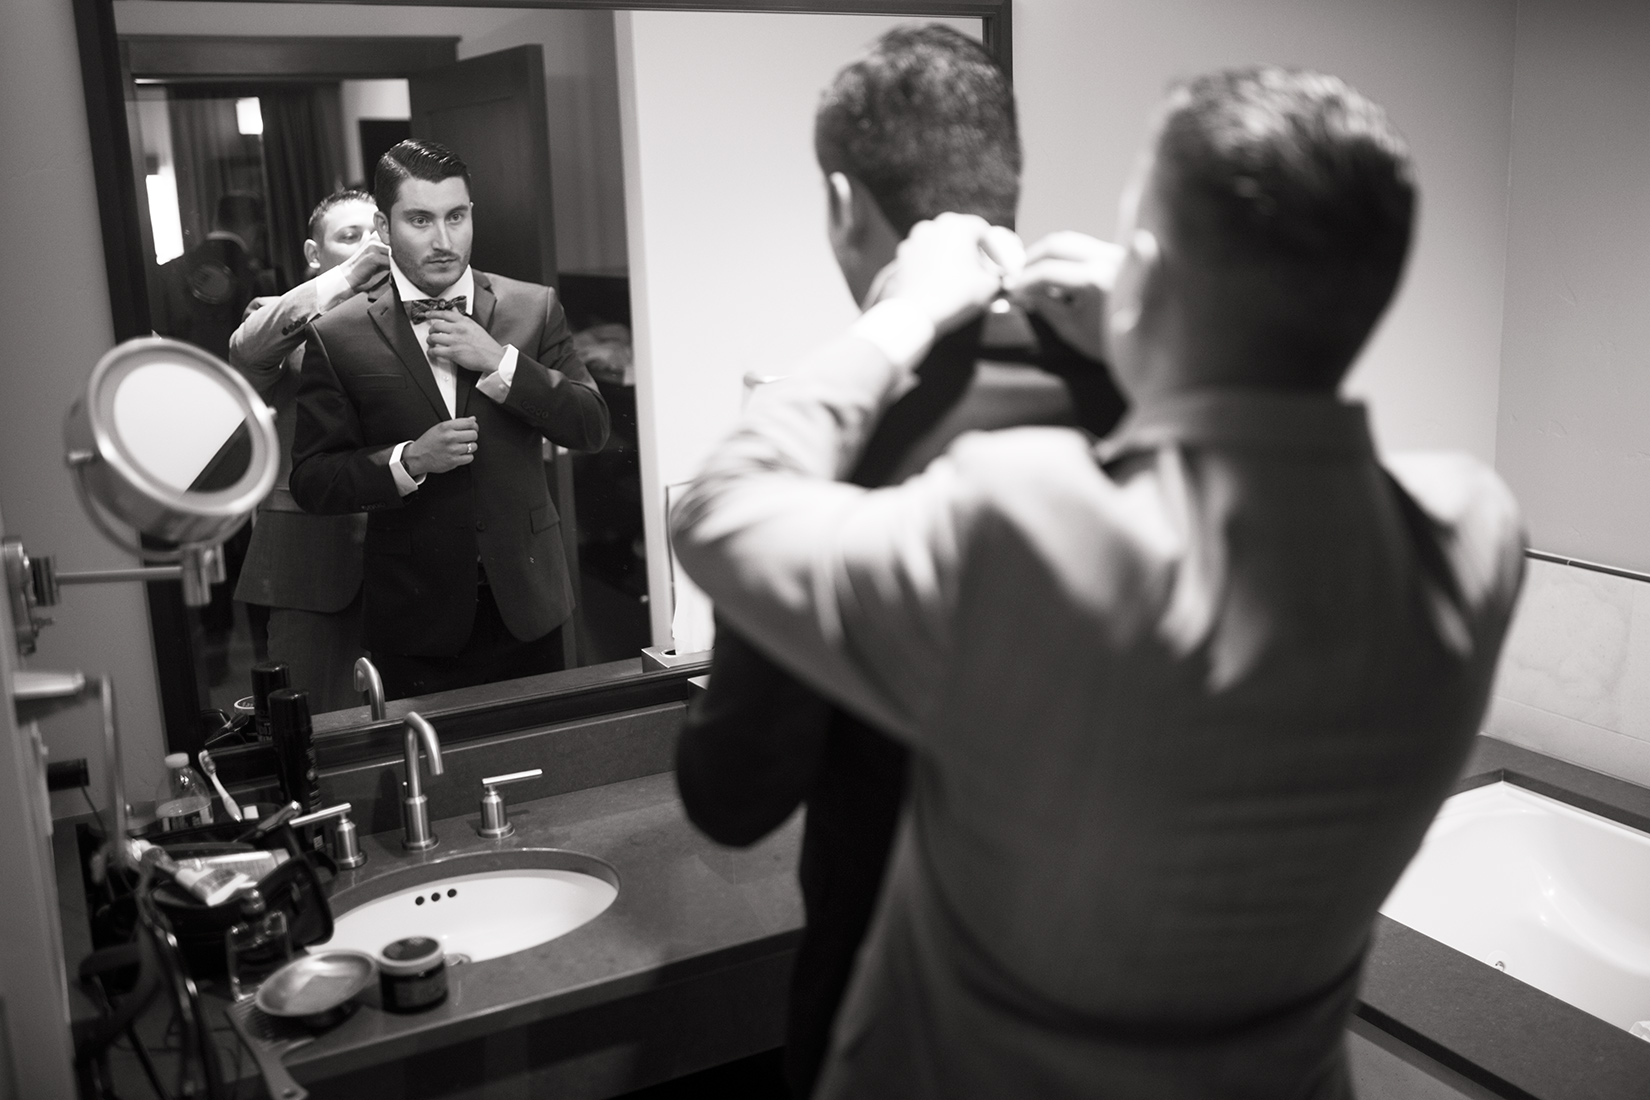 groom-getting-ready-Ritz-Tahoe